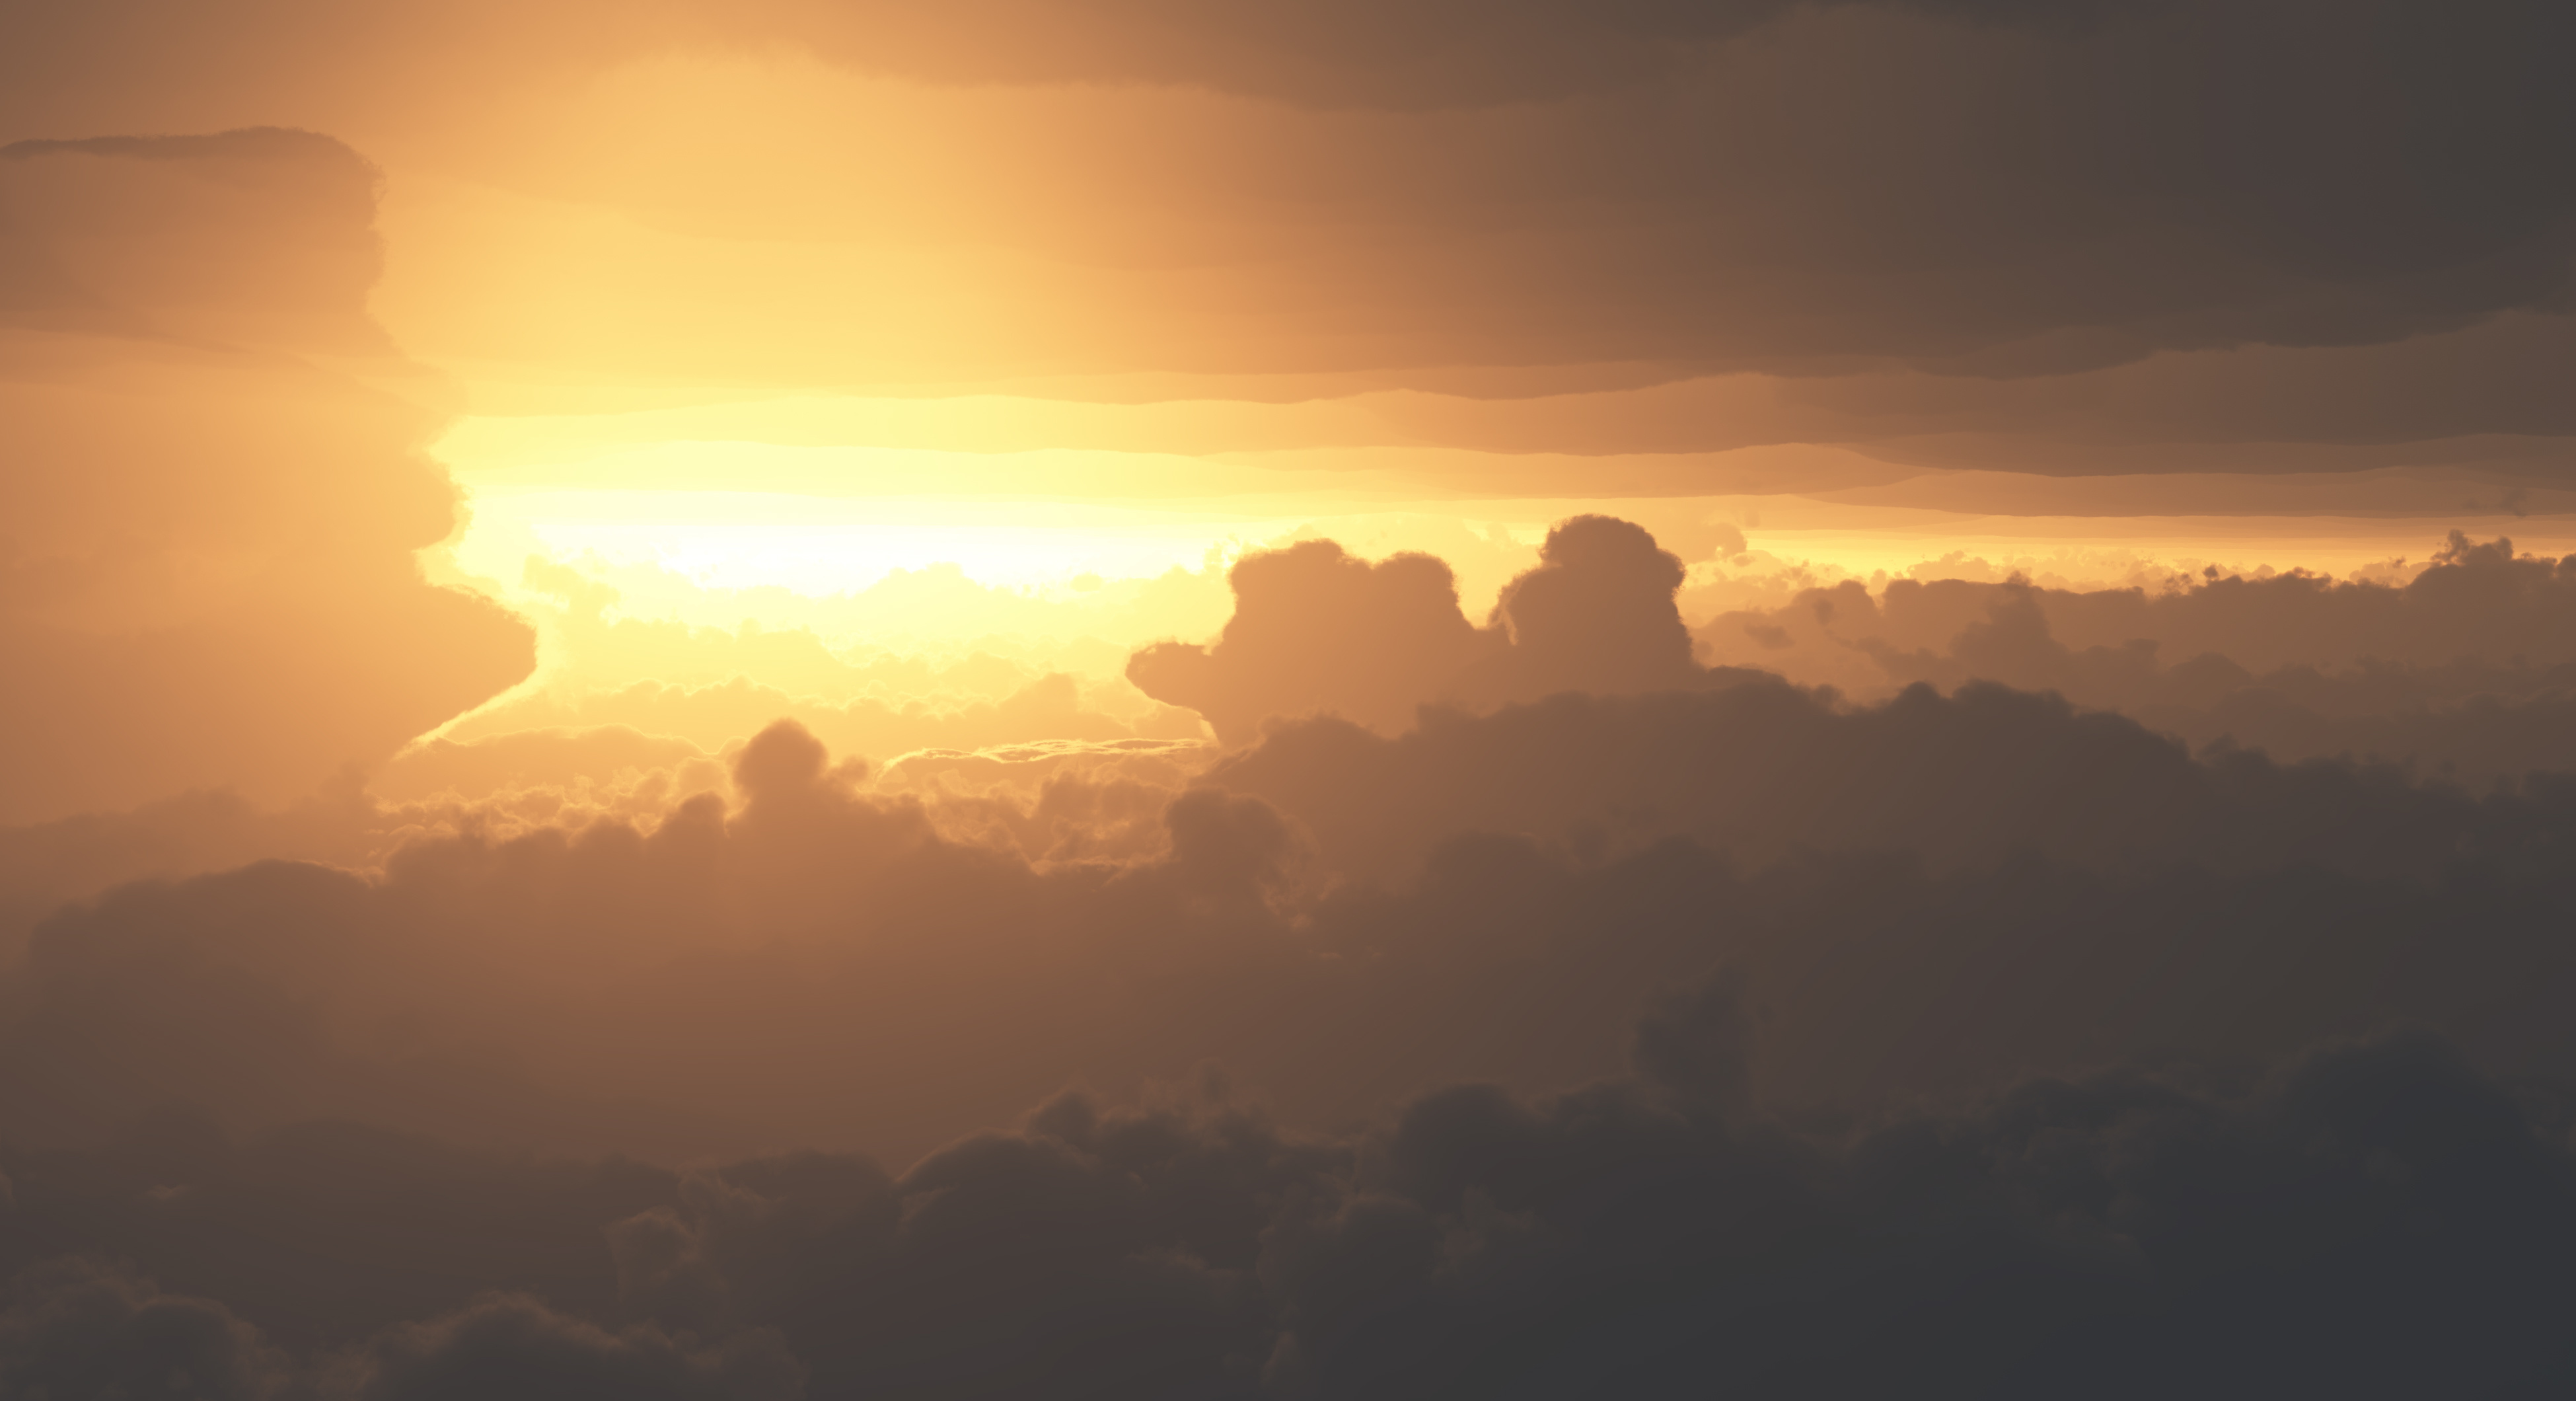 Dramatic Clouds from Above at Sunset or Sunrise